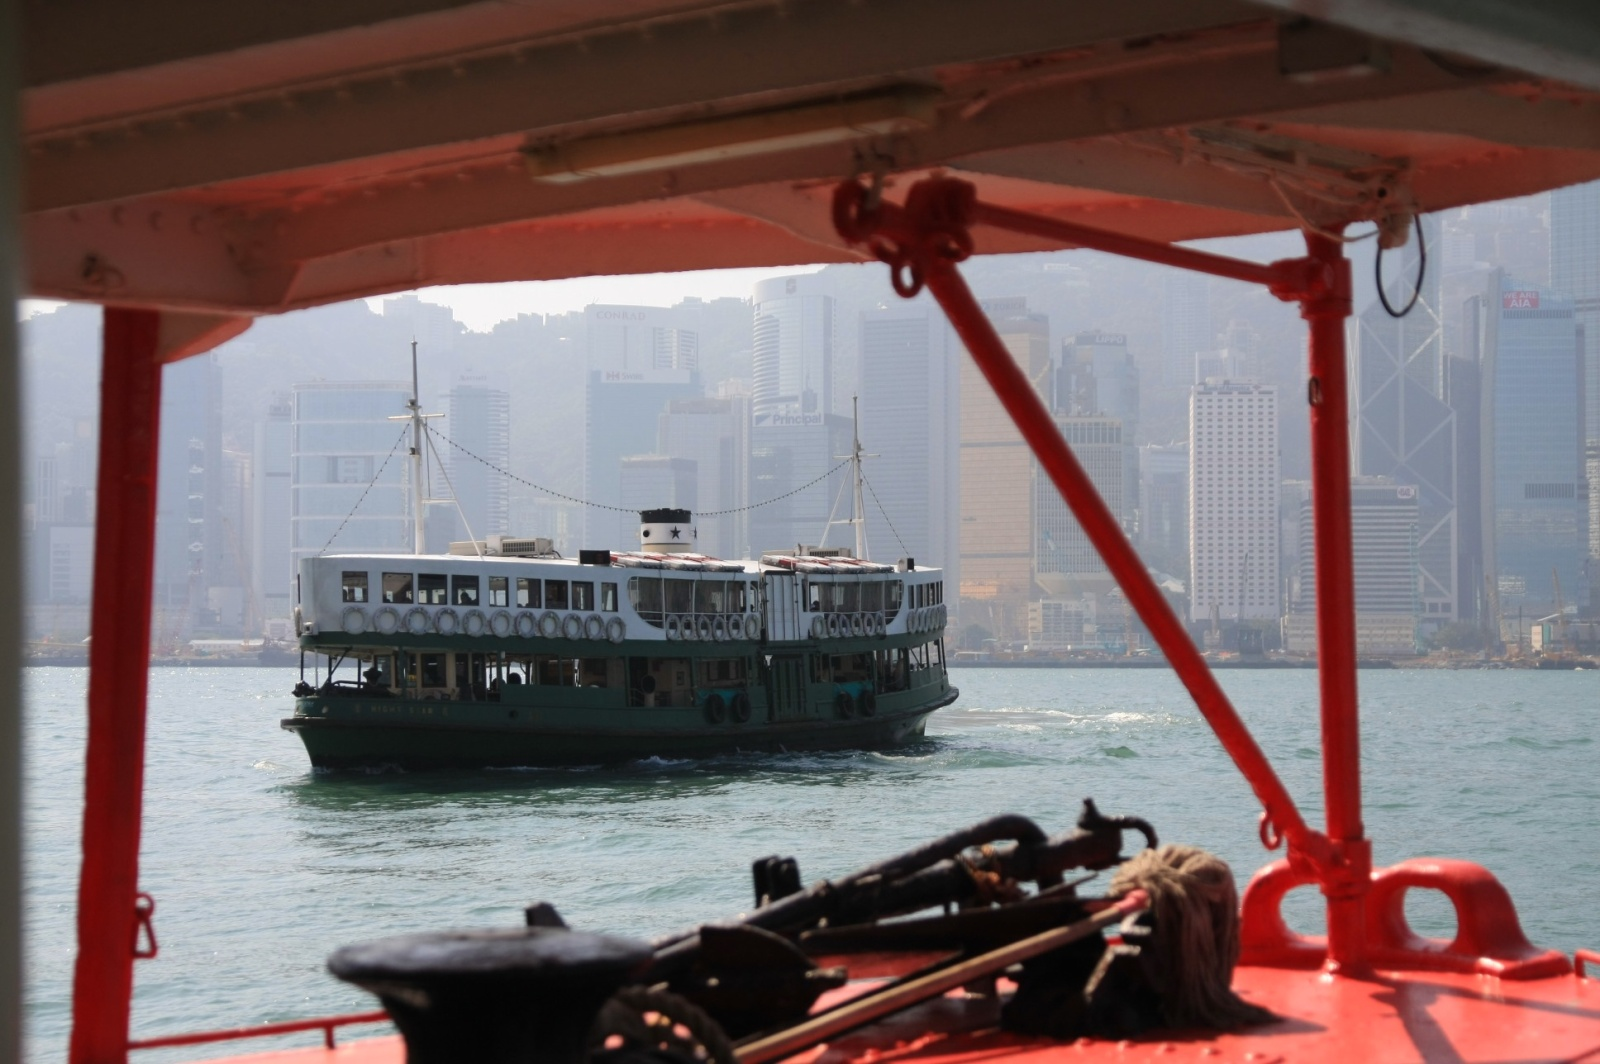 Aboard the Star Ferry